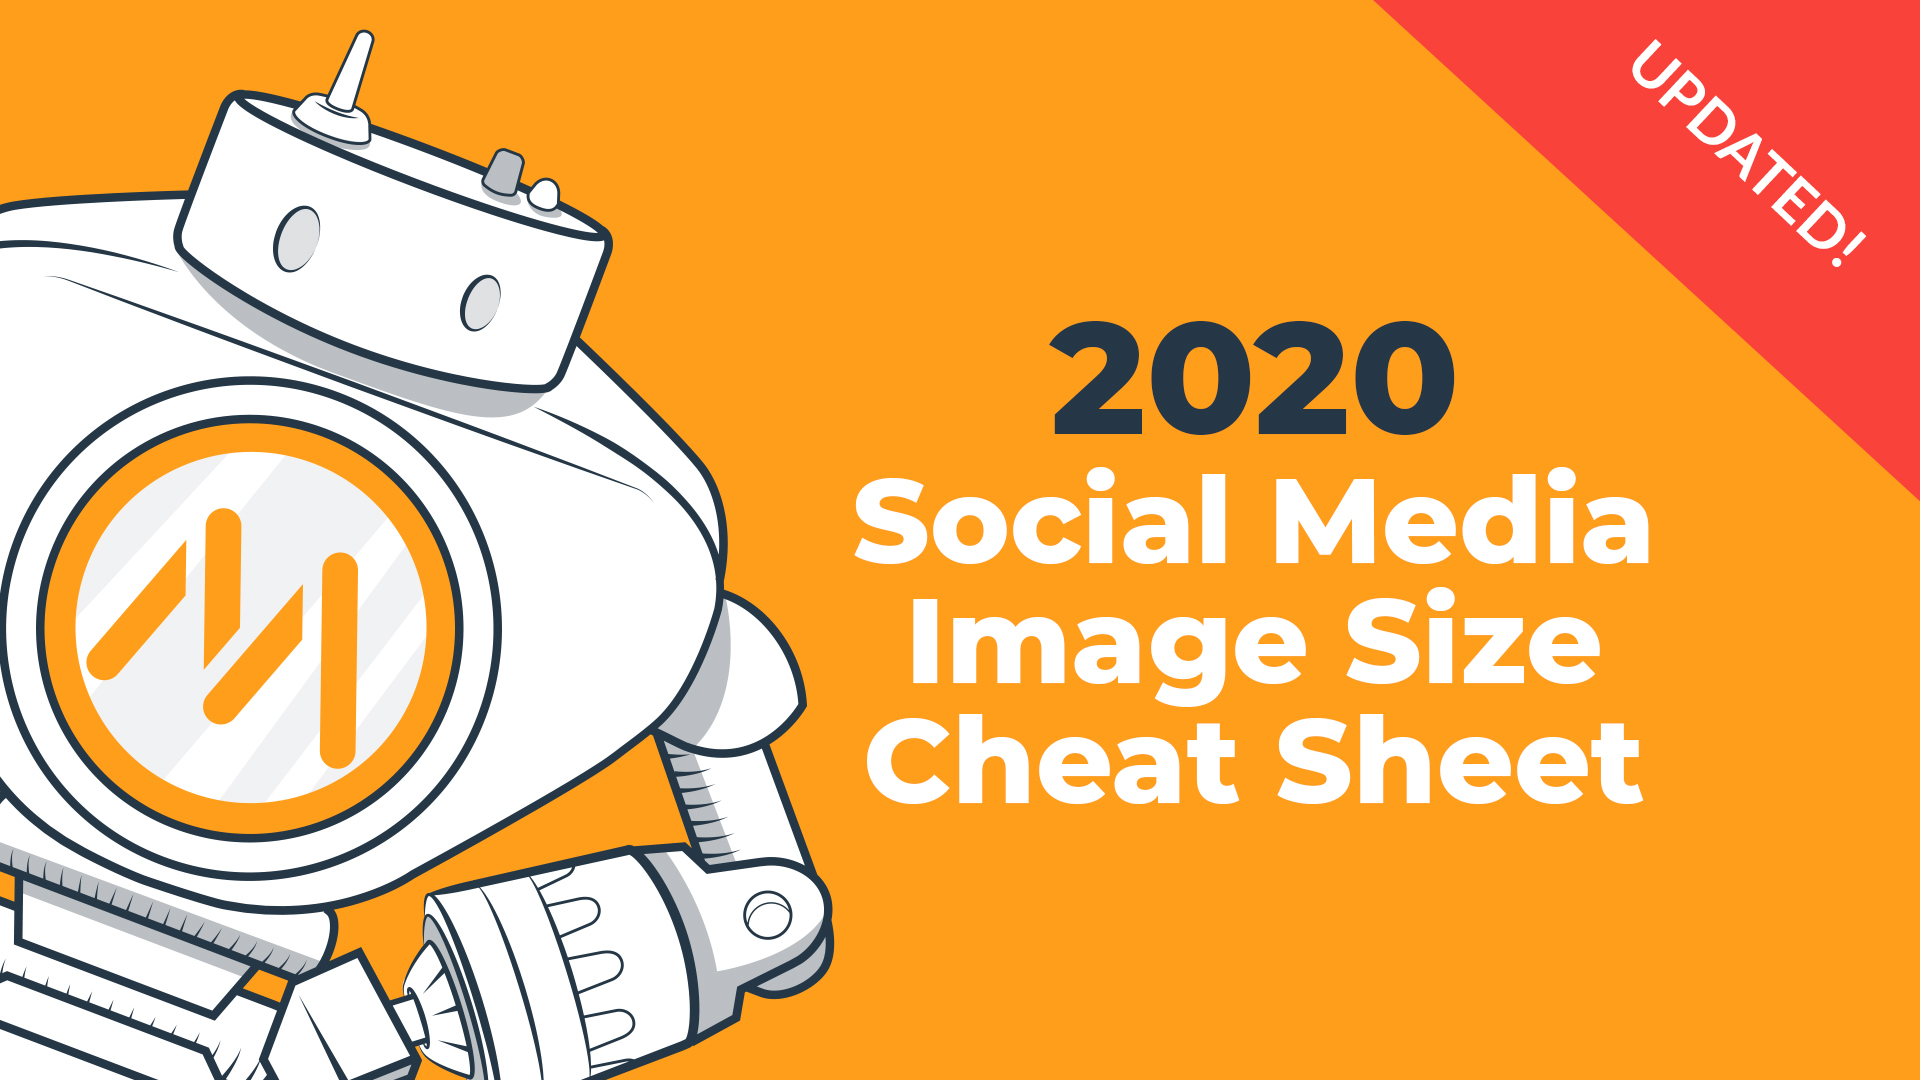 social-media-image-size-cheat-sheet.jpg